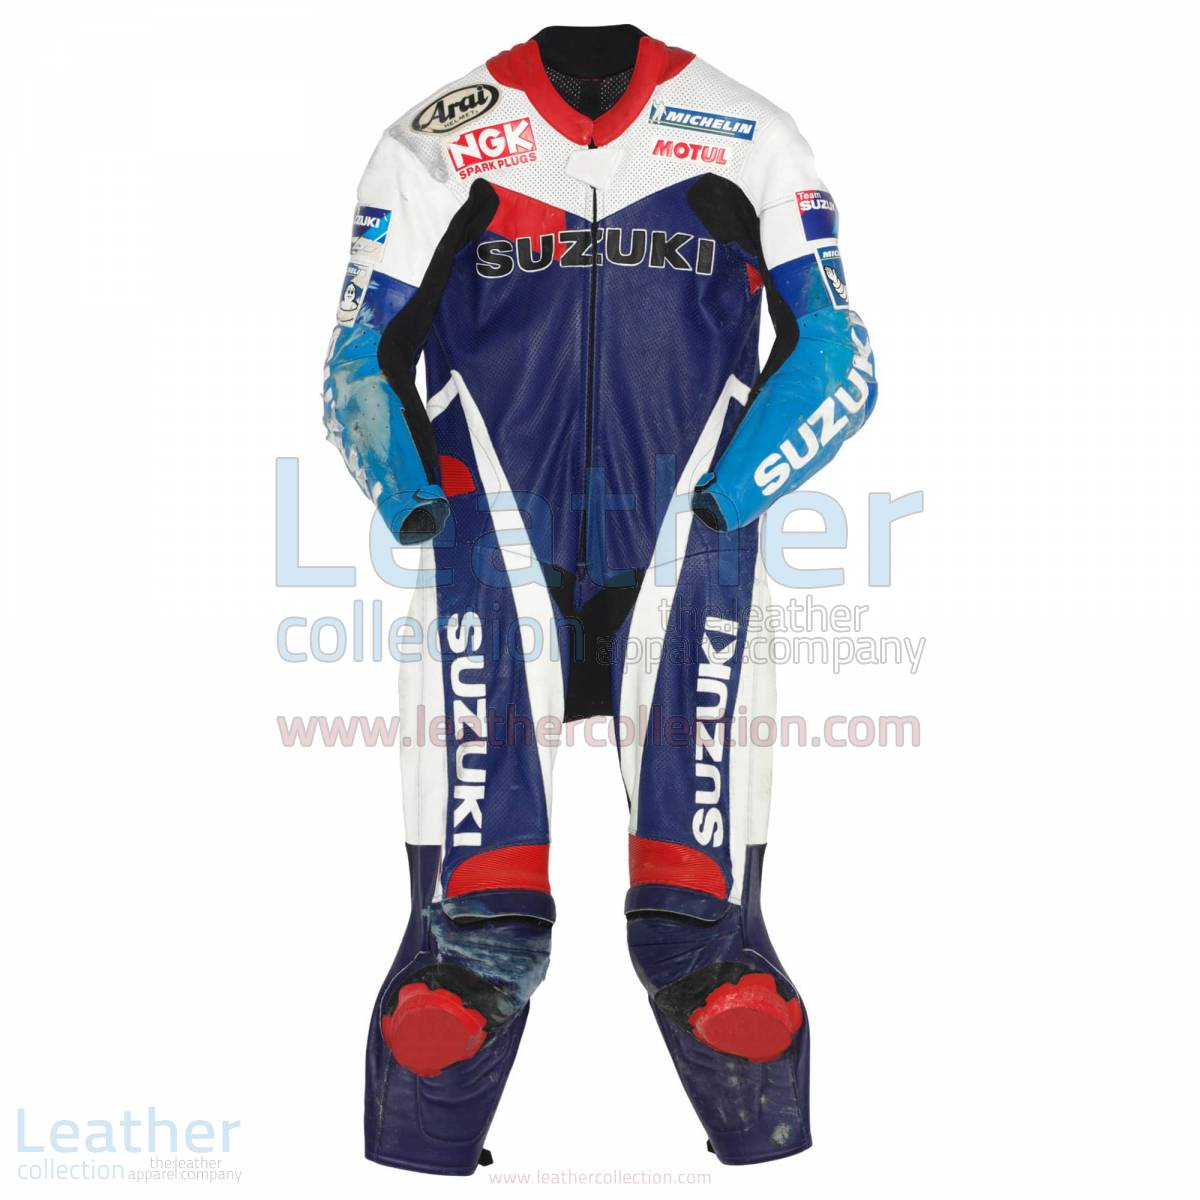 Kenny Roberts jr Suzuki GP 1999 Leathers